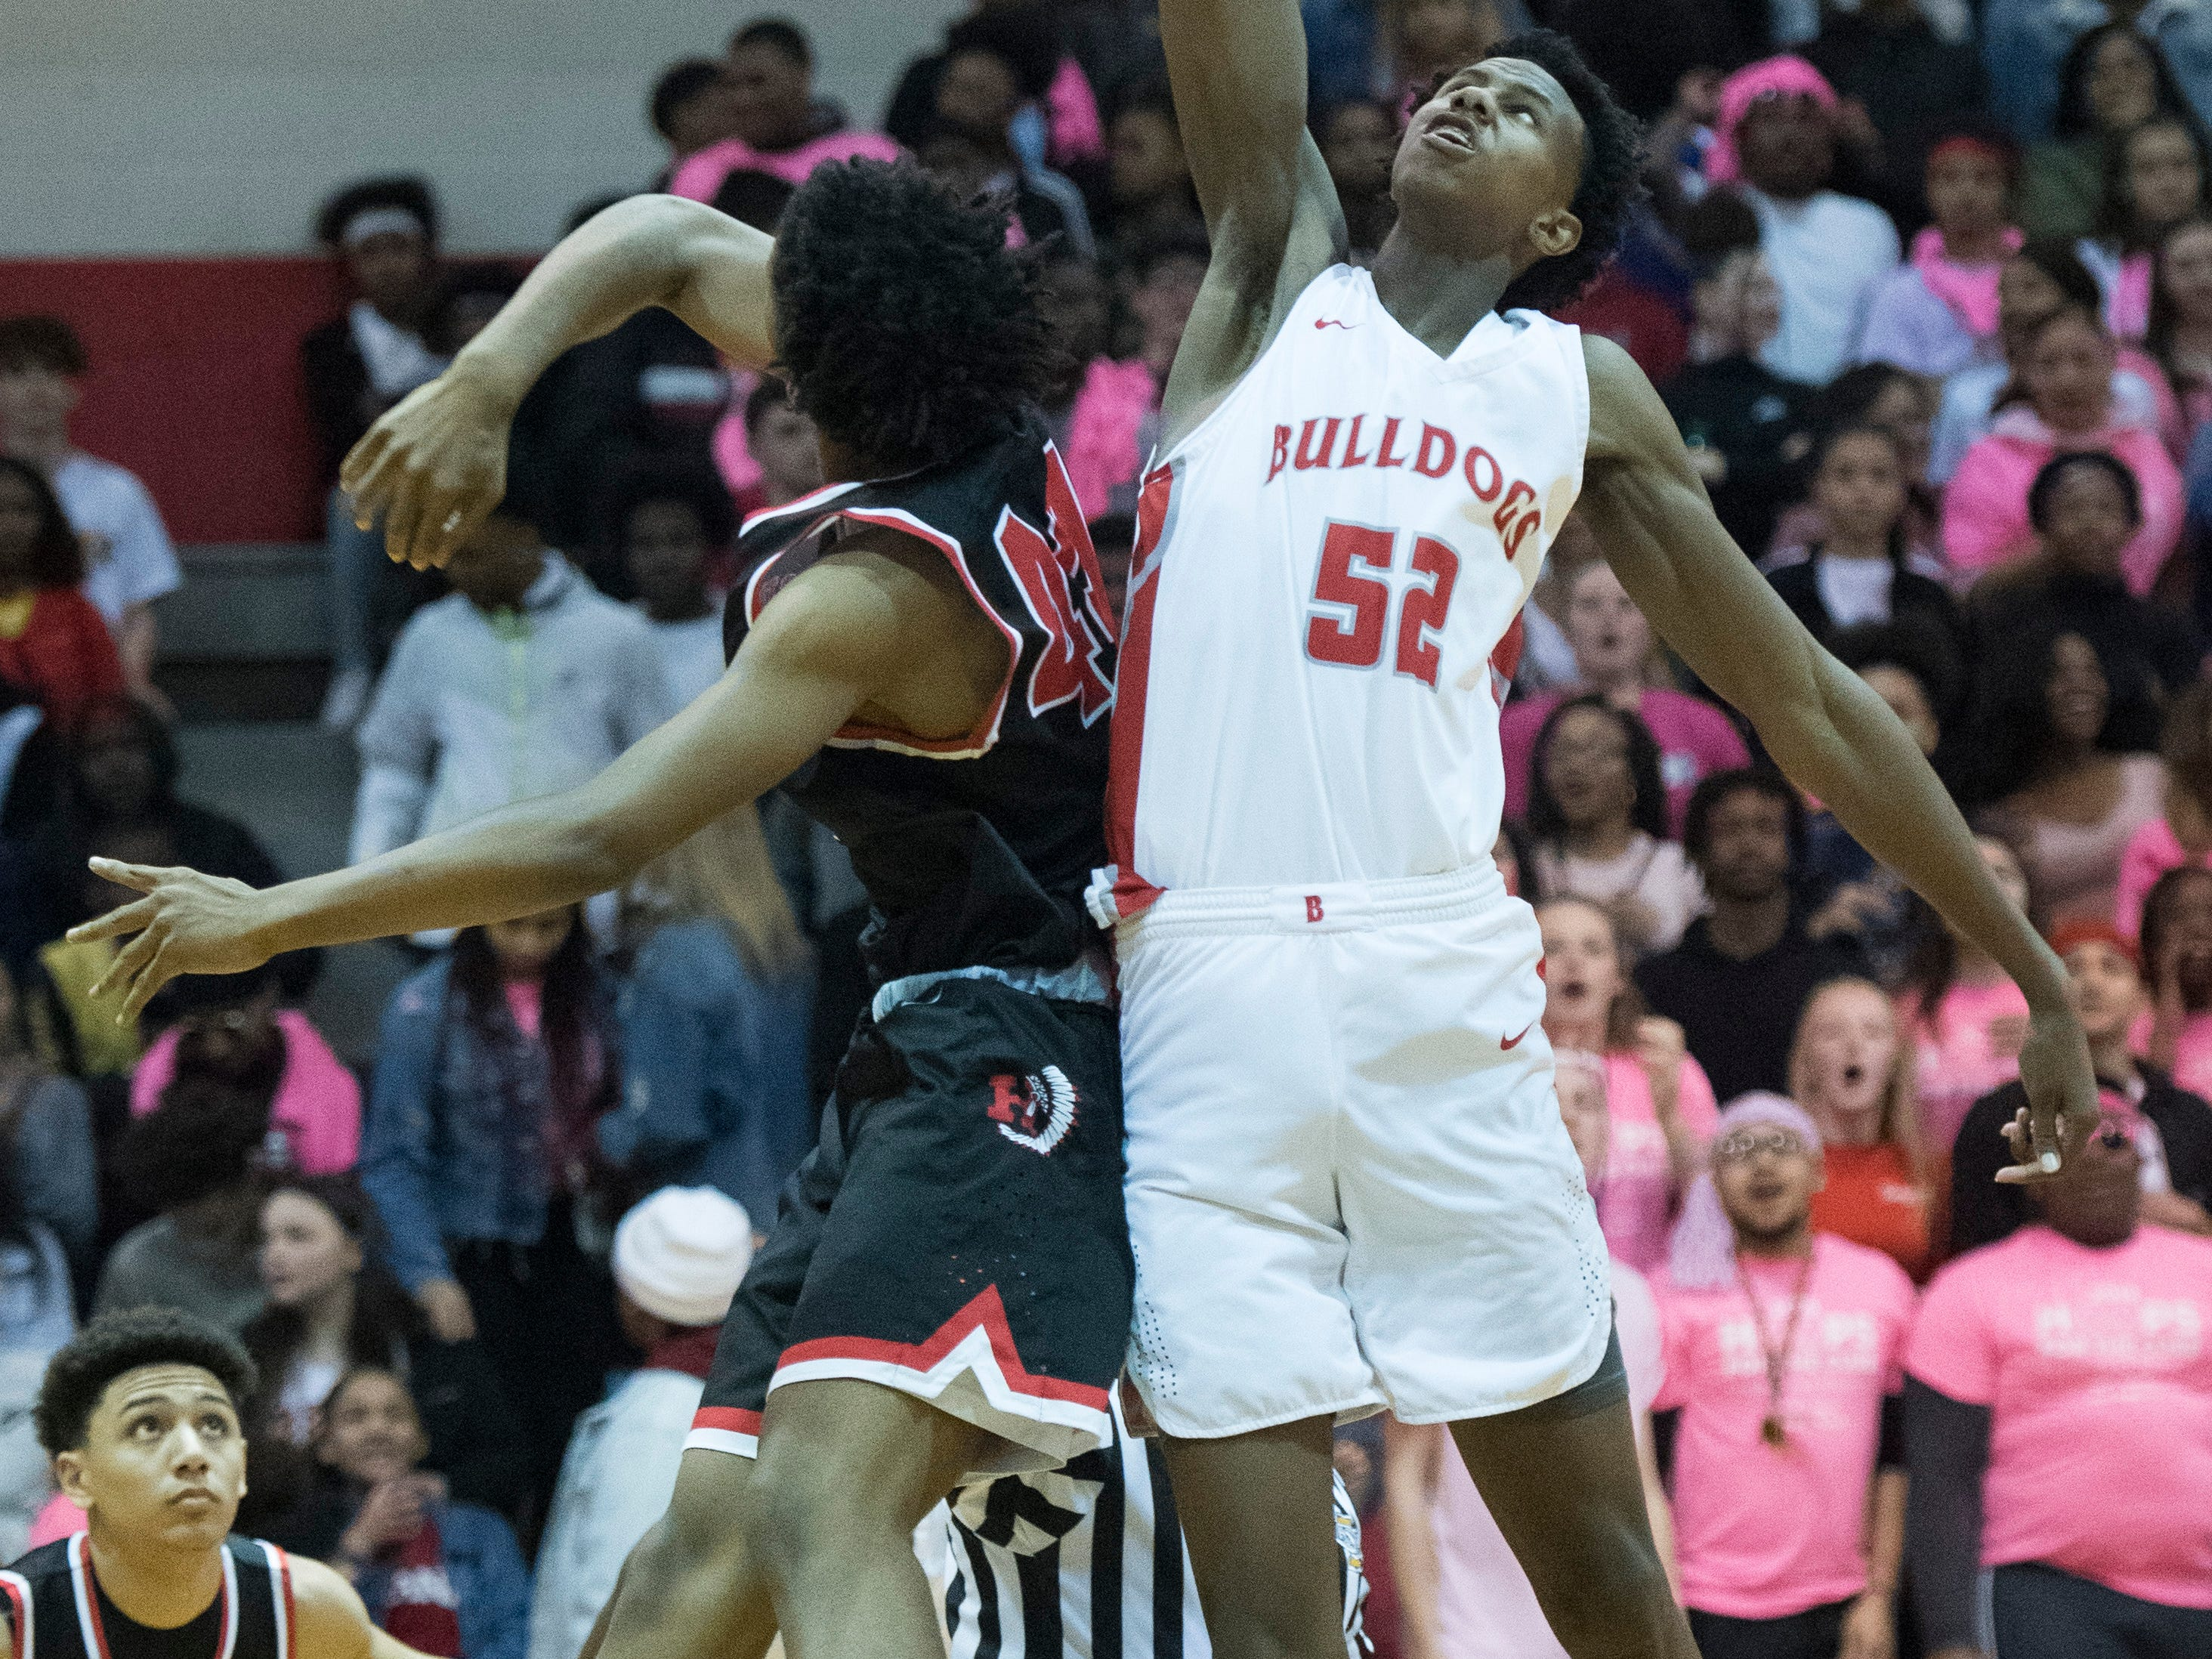 Bosse's Kiyron Powell (52) wins the tipoff to start the during the Harrison vs Bosse game at Bosse High School Tuesday, Feb. 12, 2019.